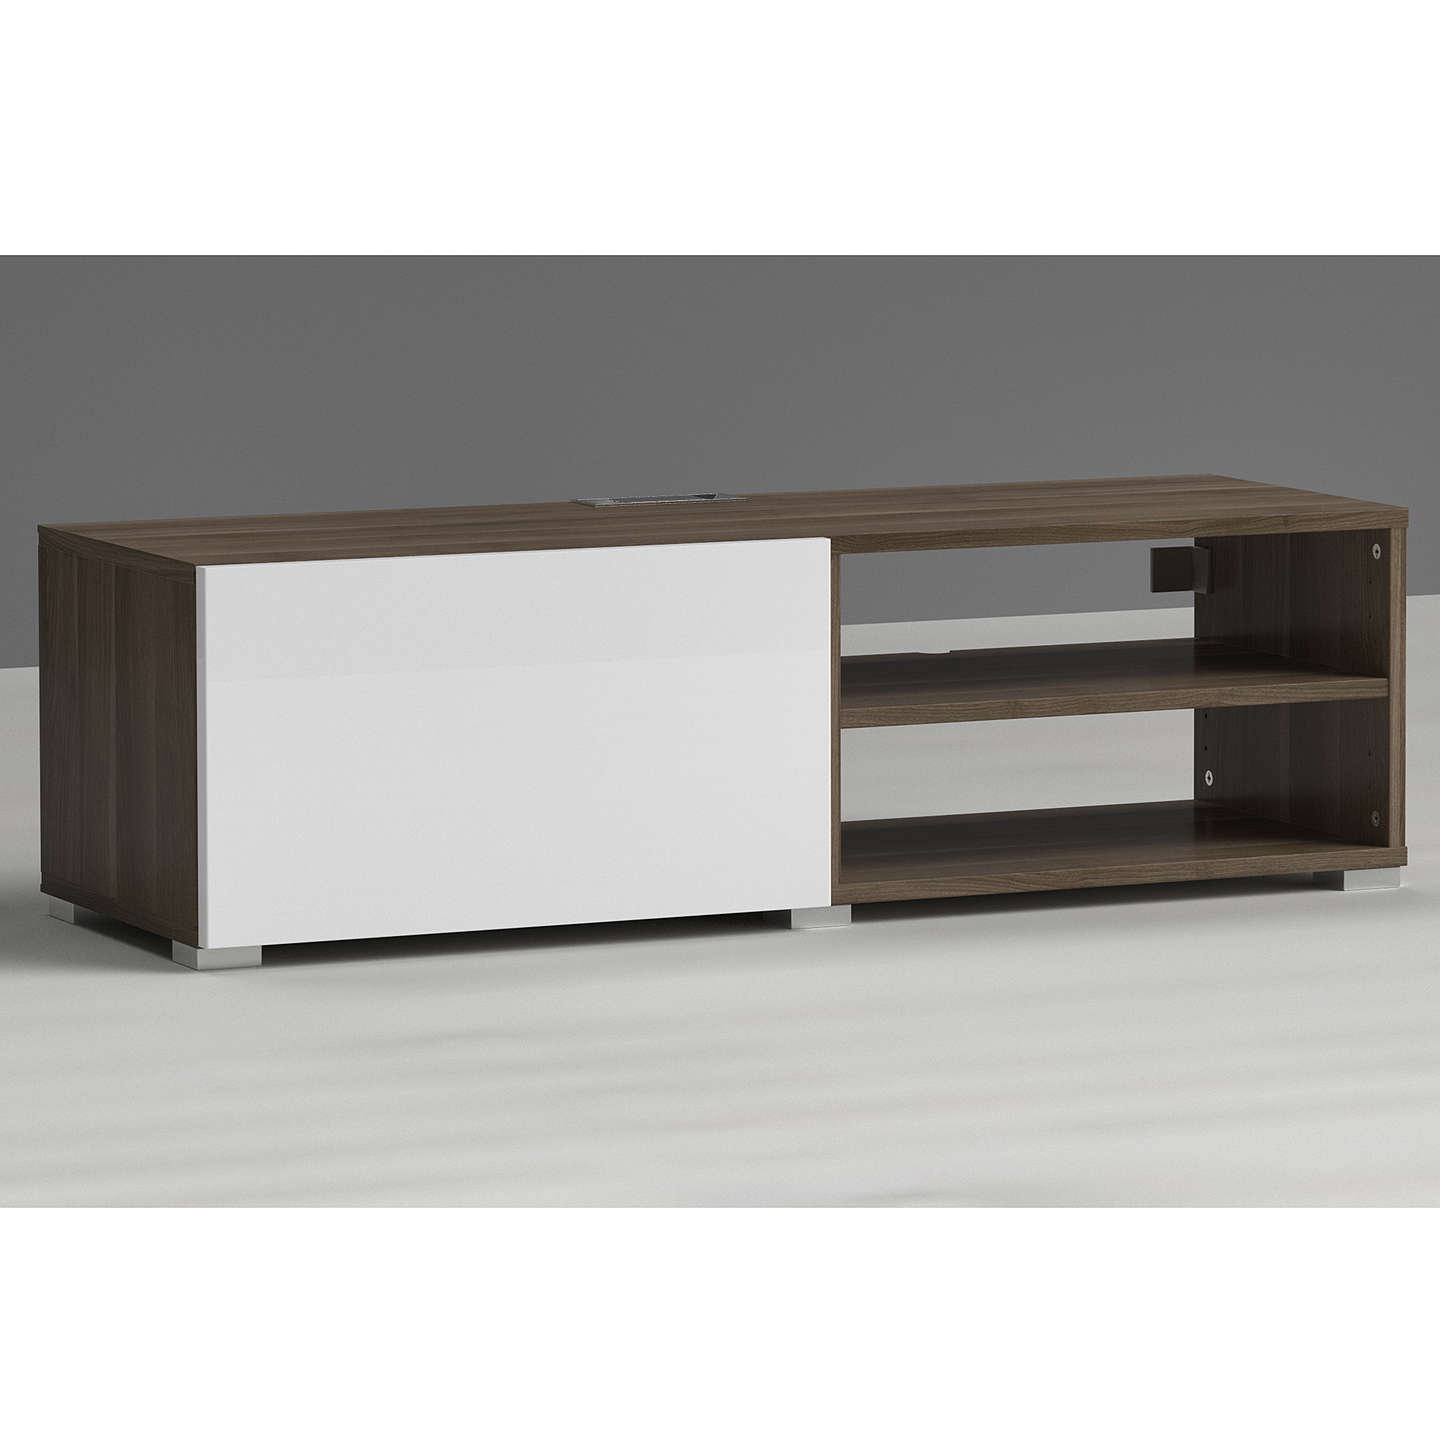 BuyHouse by John Lewis Mix it Media Unit - Ash frame / White door Online at johnlewis.com